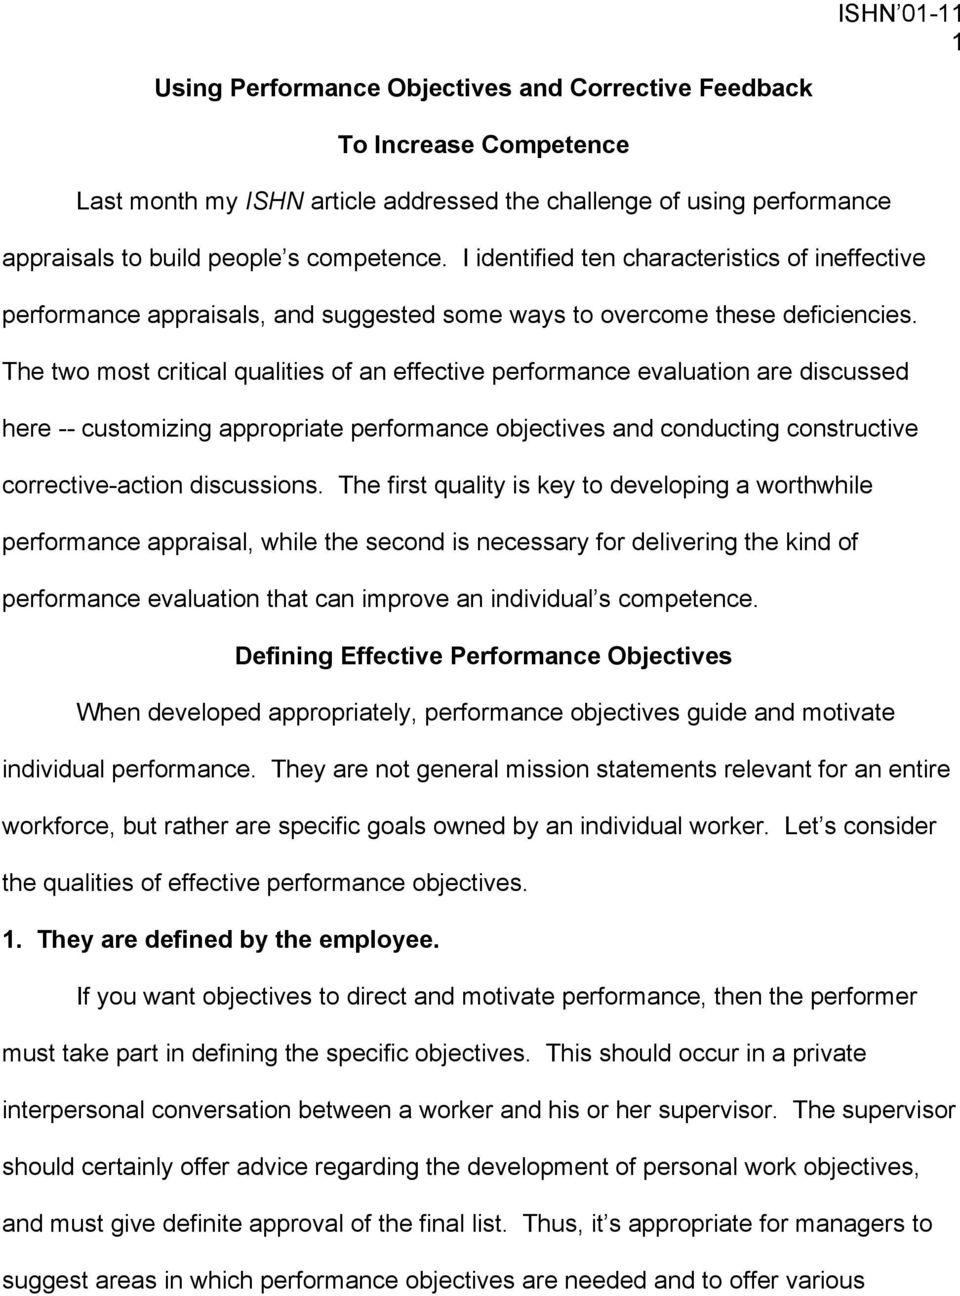 The two most critical qualities of an effective performance evaluation are discussed here -- customizing appropriate performance objectives and conducting constructive corrective-action discussions.